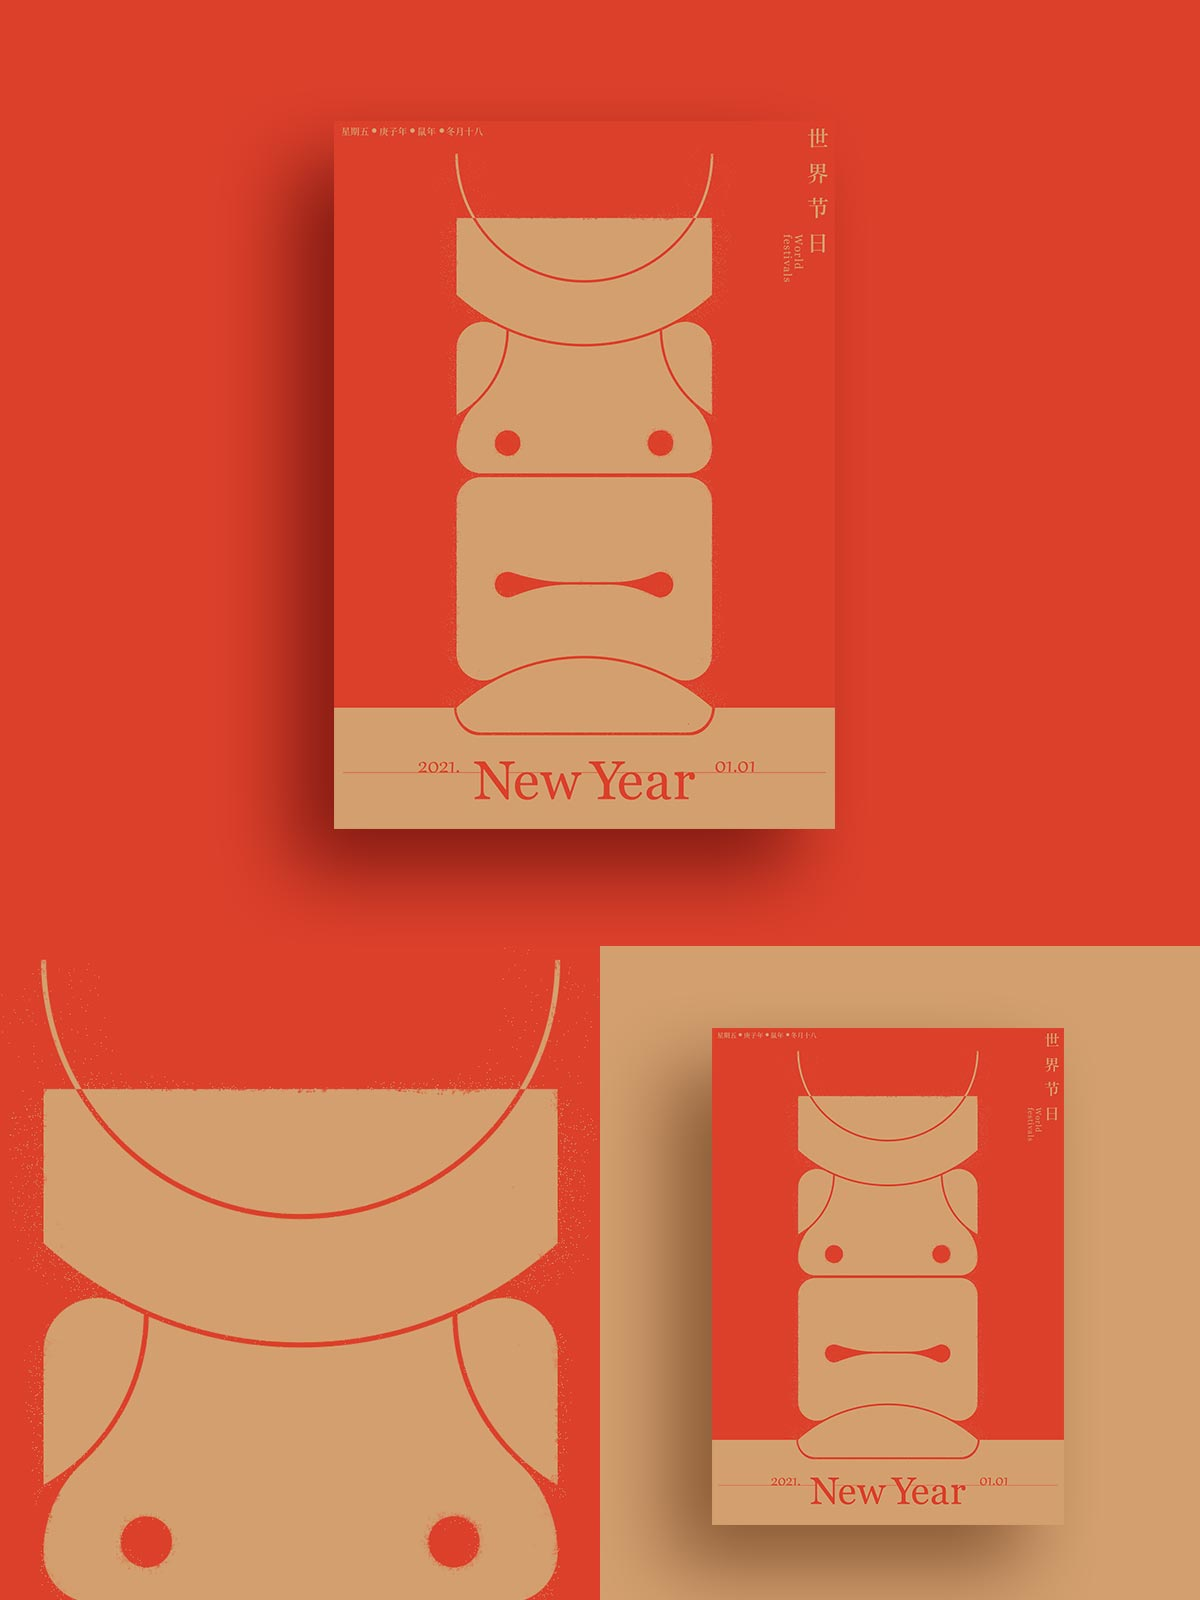 Explore the possibility of fonts and traditional culture-happy new year